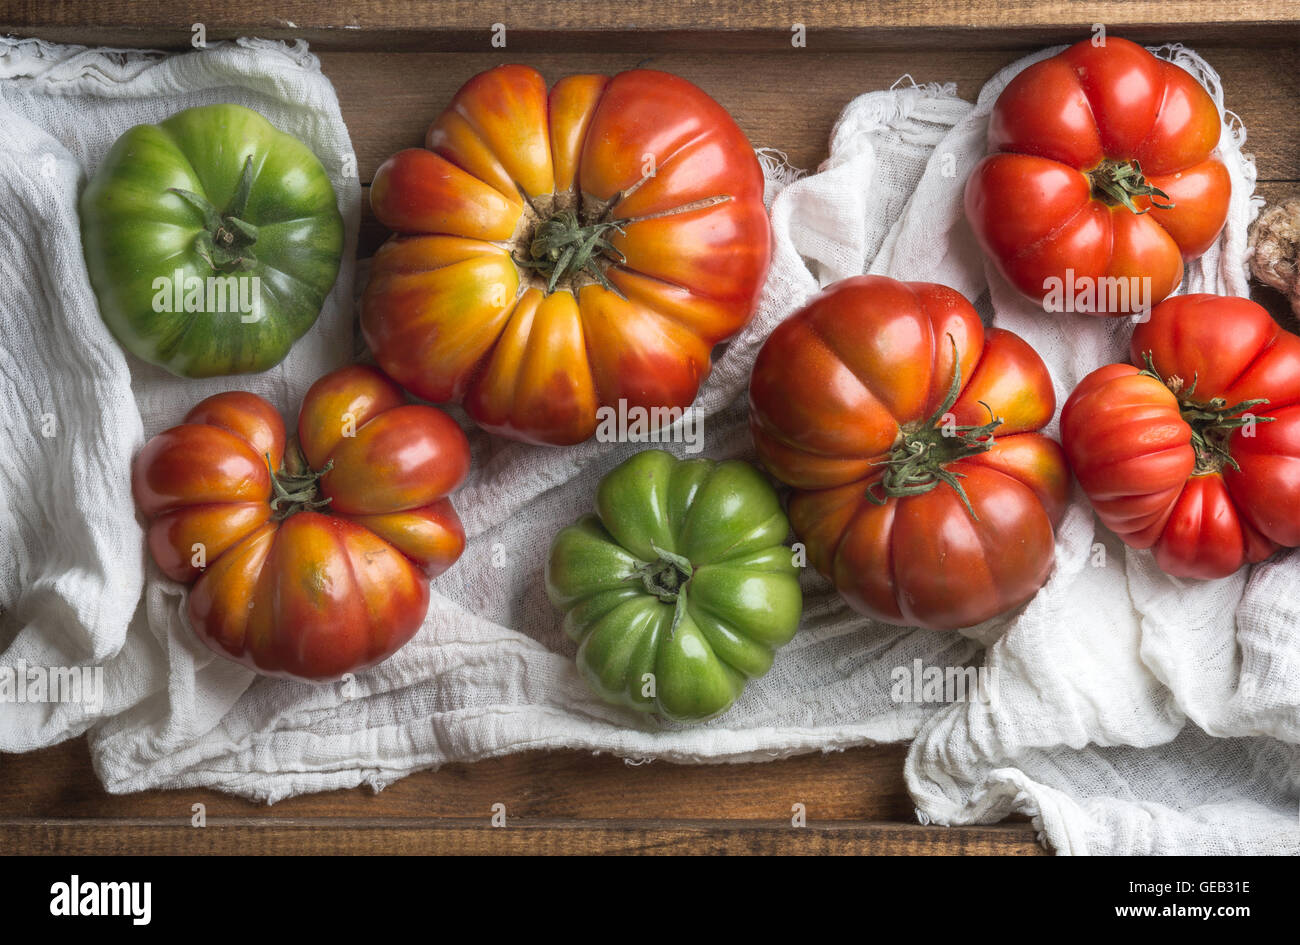 Colorful Heirloom tomatoes in rustic wooden tray - Stock Image